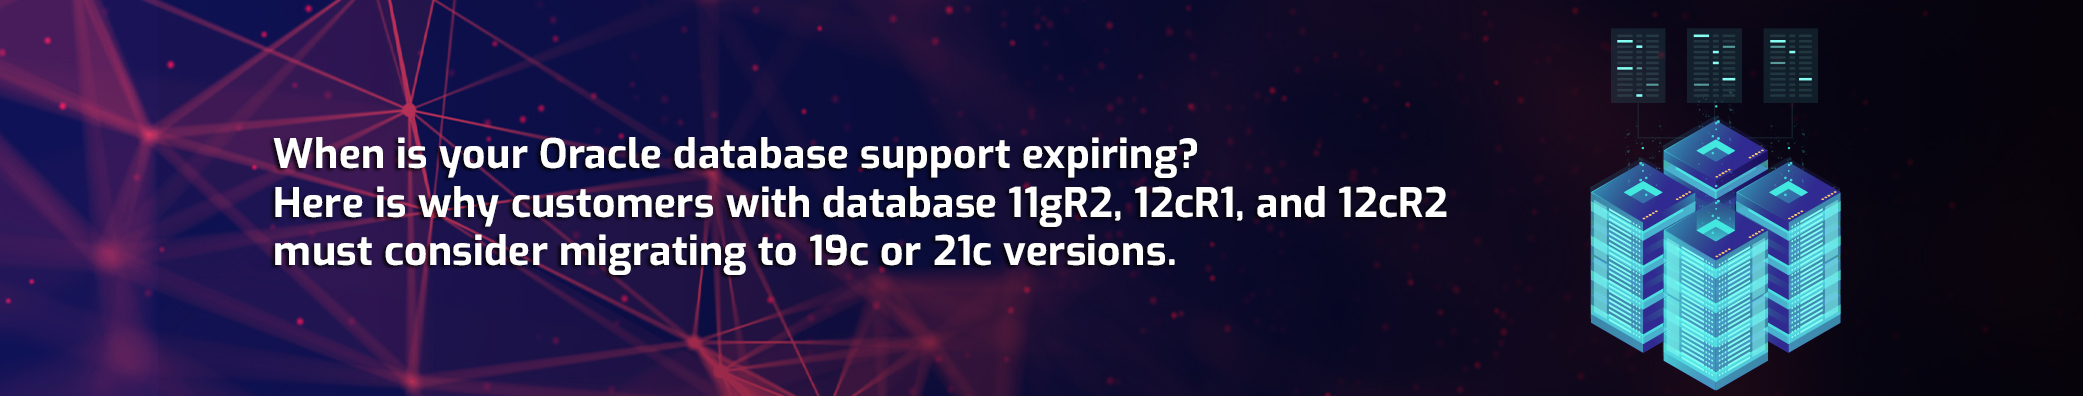 Why Upgrade or Migrate Oracle Database to 19c or 21c?